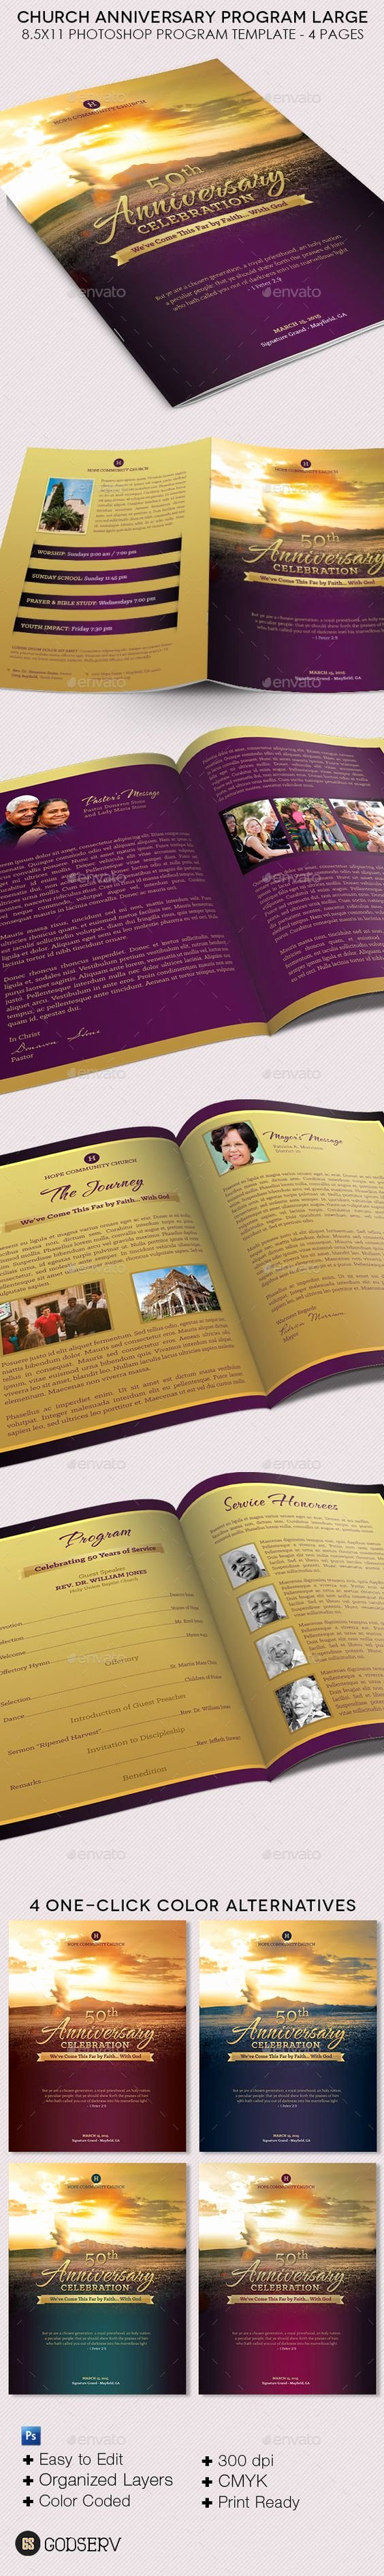 Church Anniversary Program Template Luxury Church Anniversaries and Templates On Pinterest